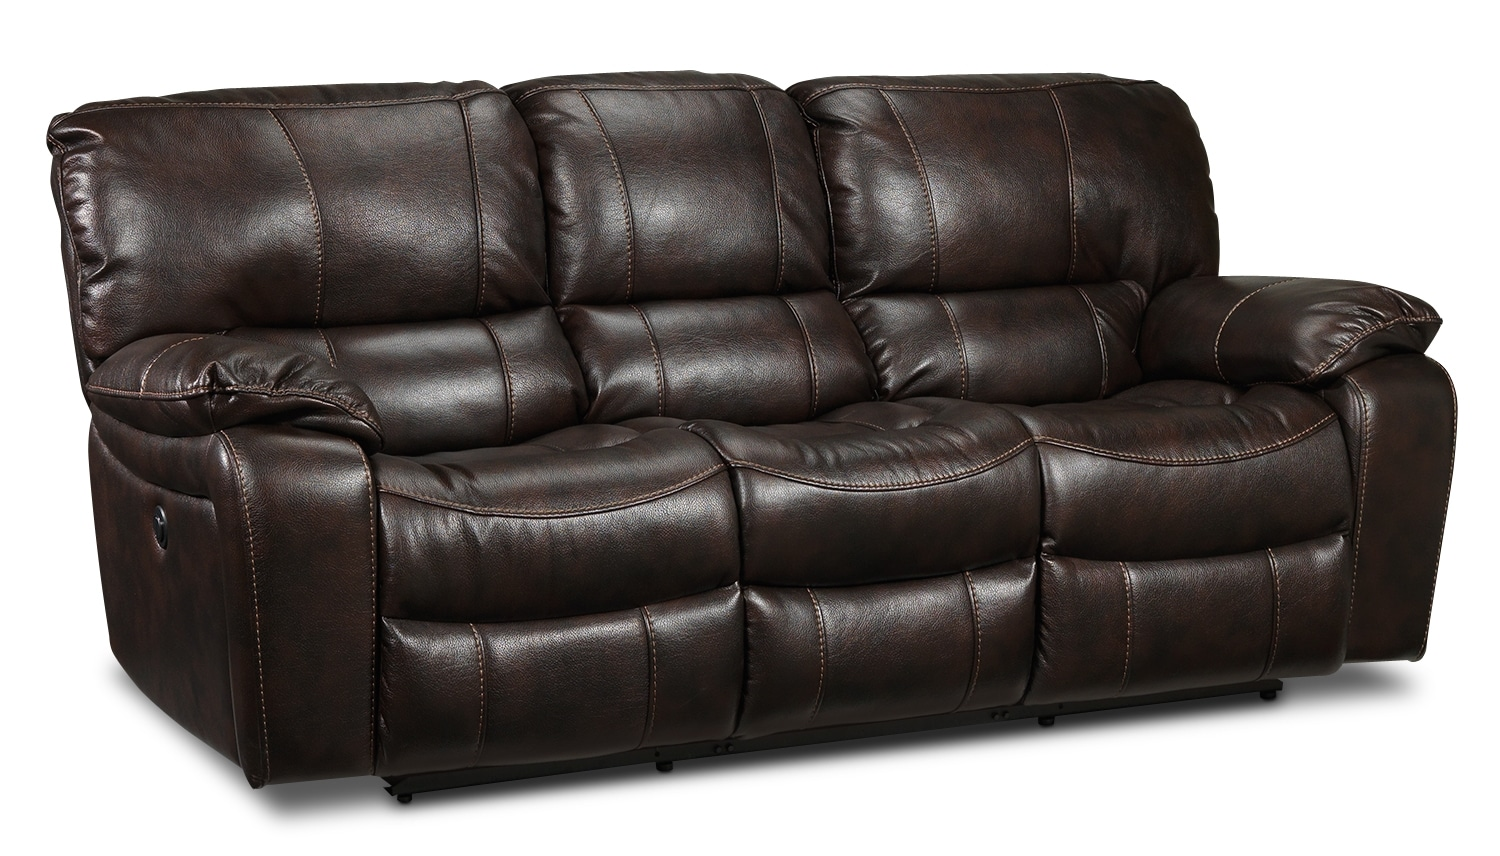 [Santorini Power Reclining Sofa - Walnut]